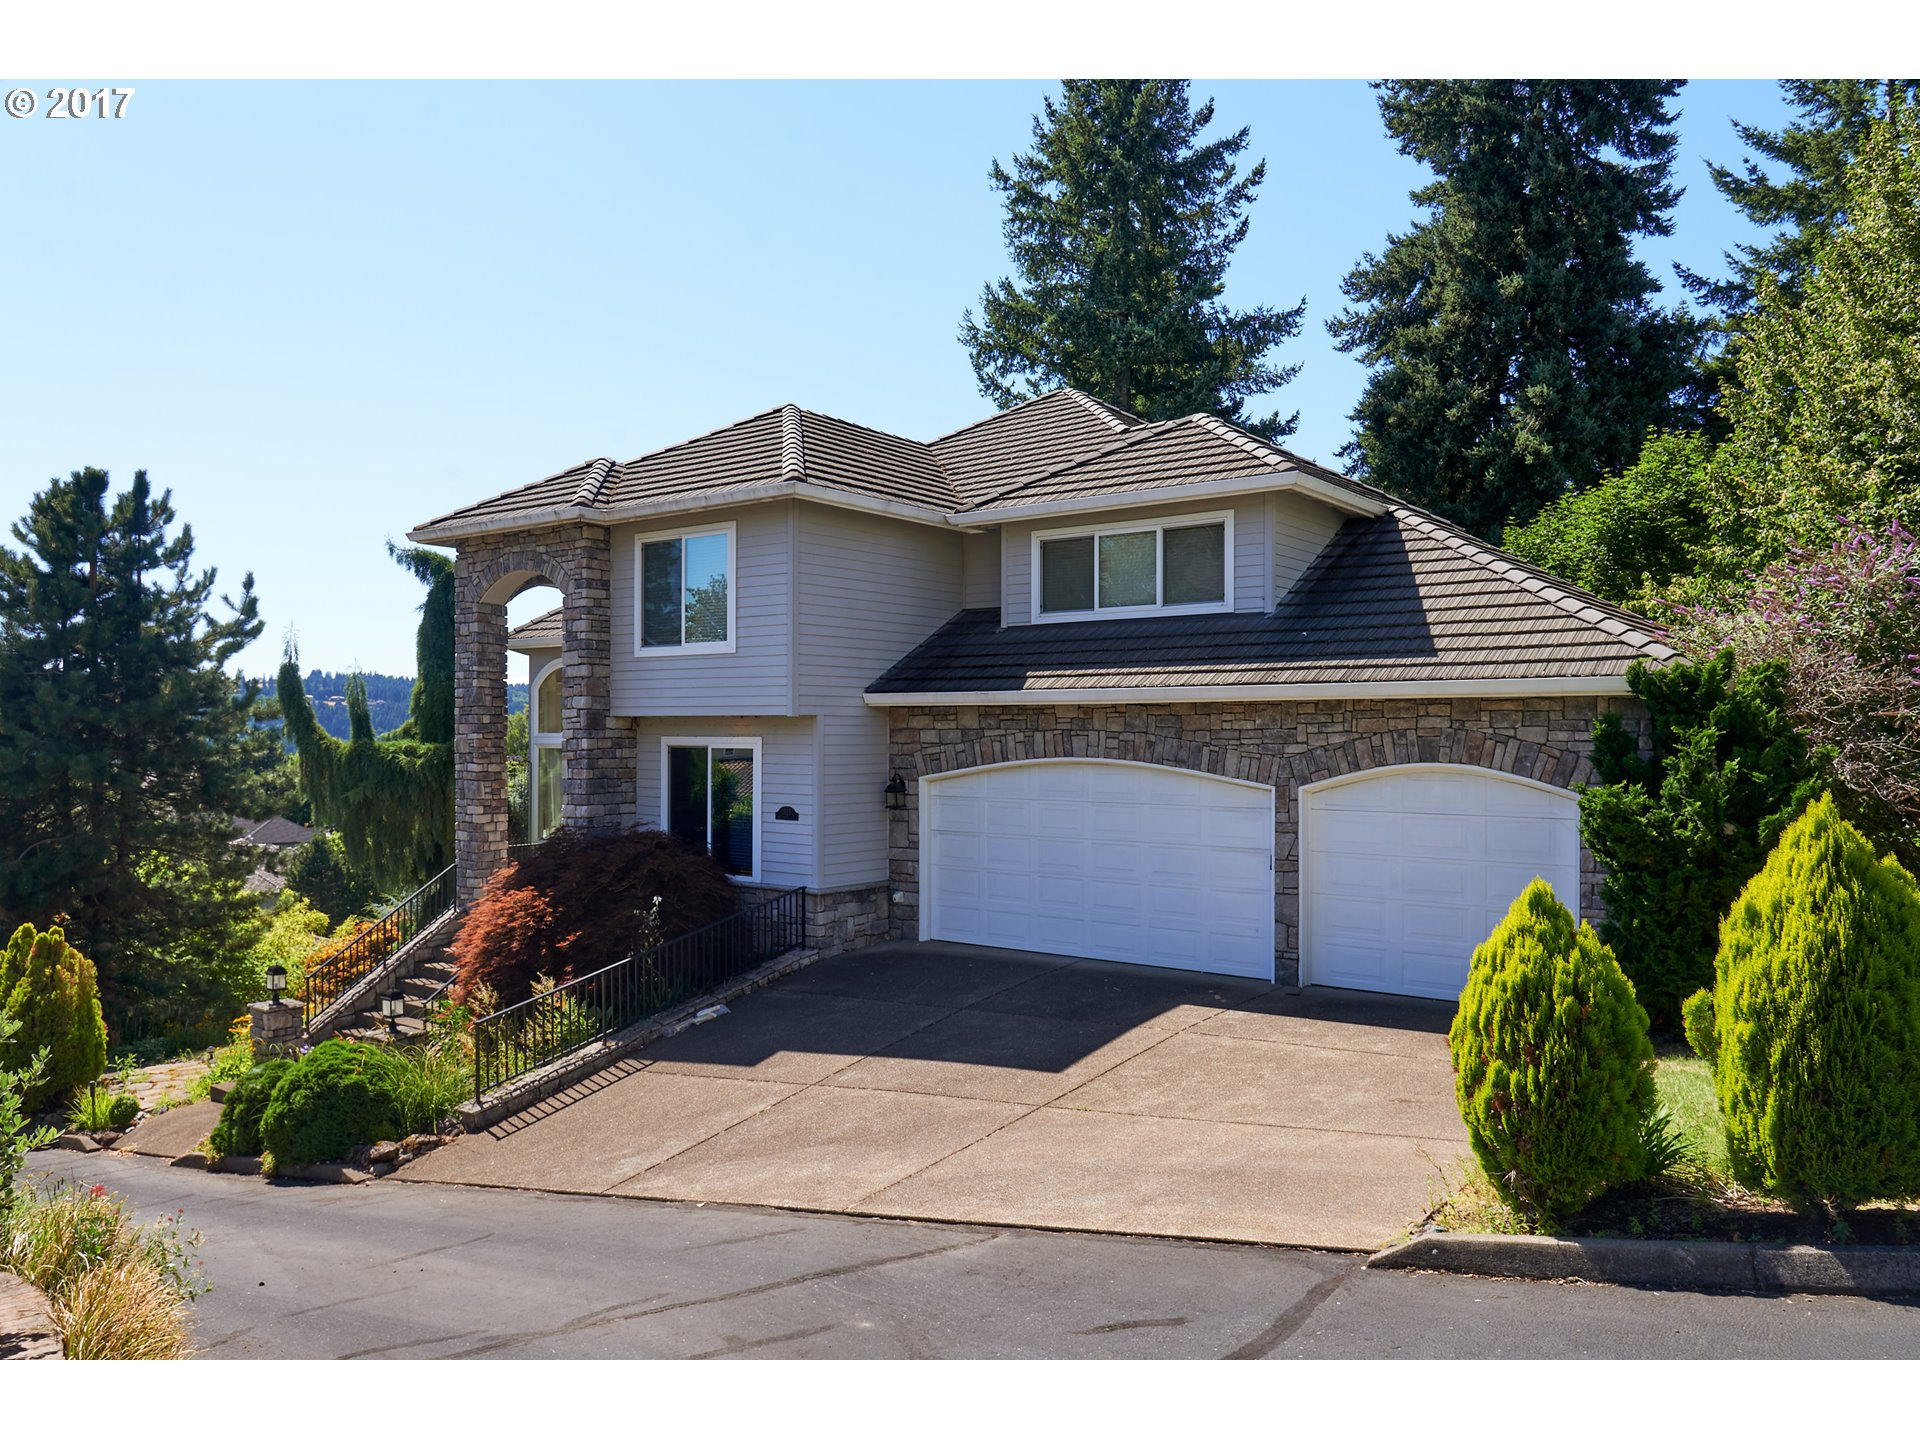 2525 REMINGTON DR, West Linn, OR 97068